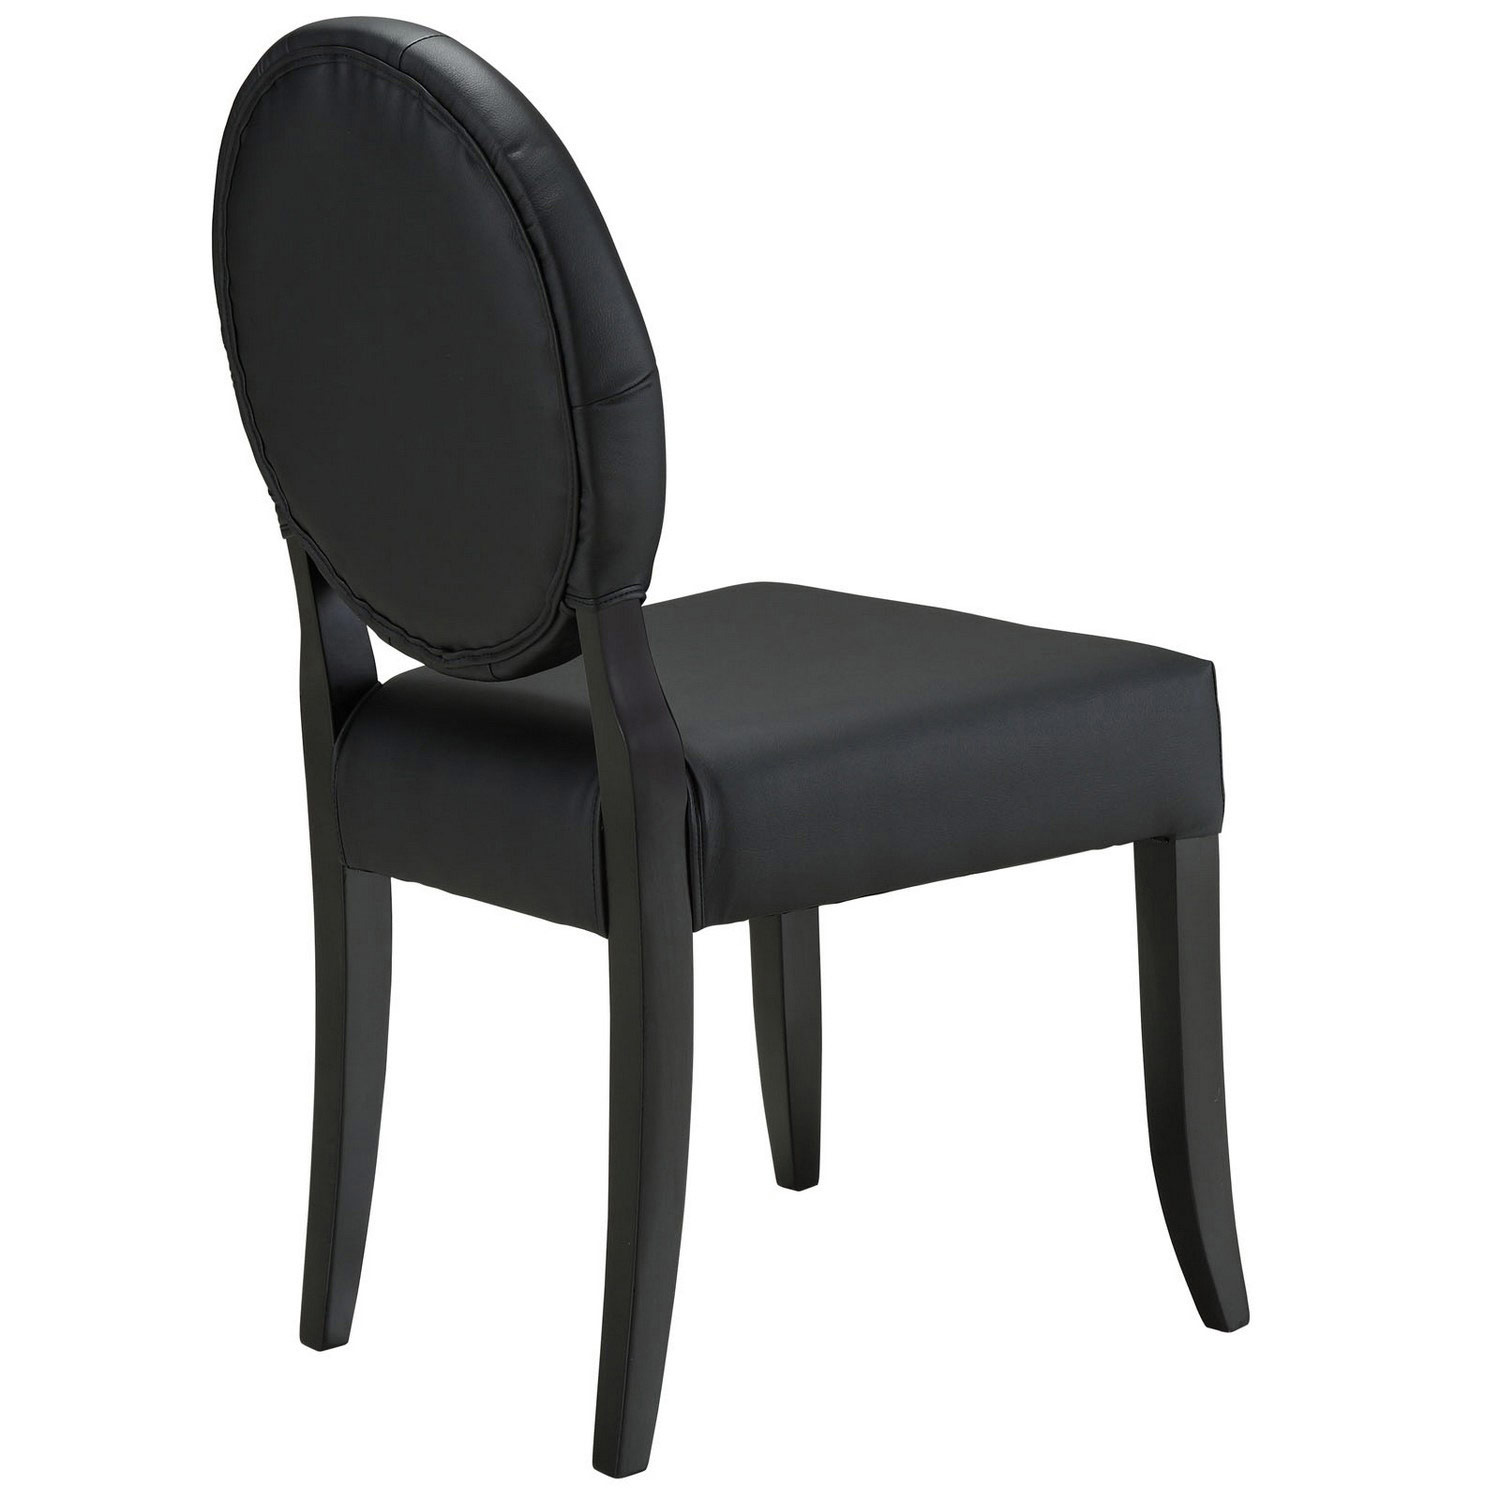 Modway Button Dining Side Chair Set of 4 - Black